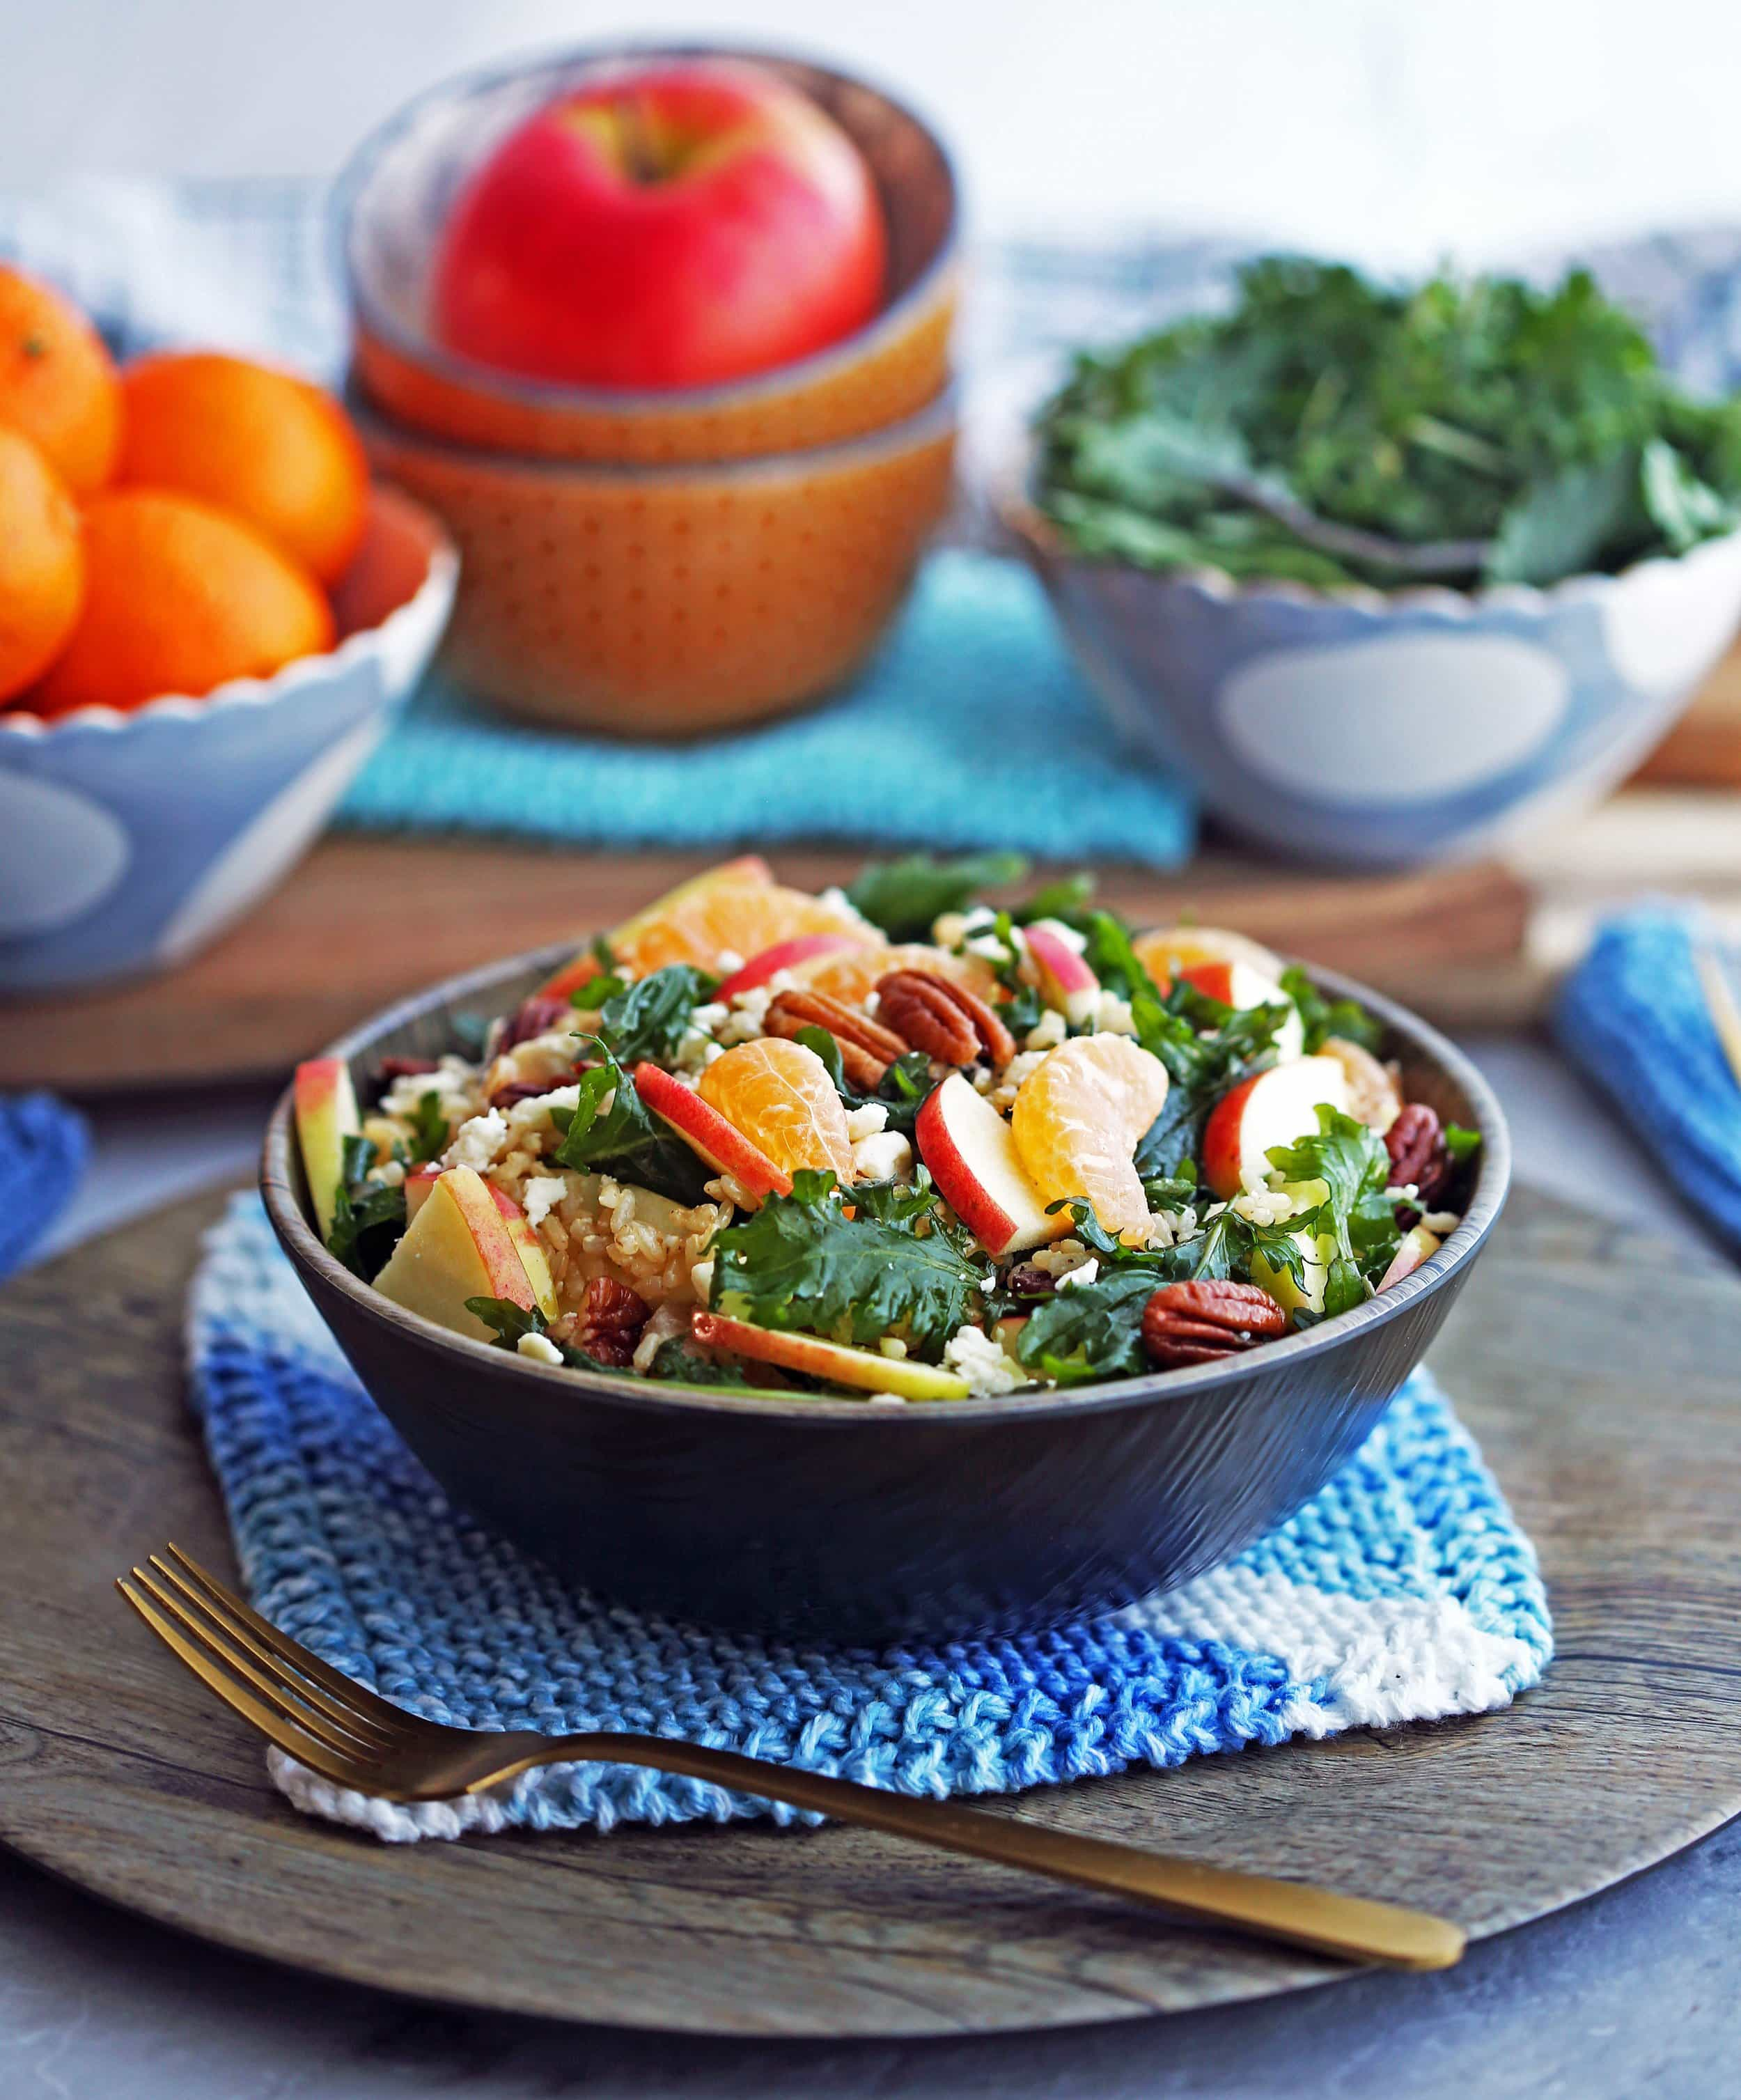 Side angled view of baby kale brown rice salad with feta, apples, and clementines in a wooden bowl, with bowls of clementines, apple, and baby kale in the background.